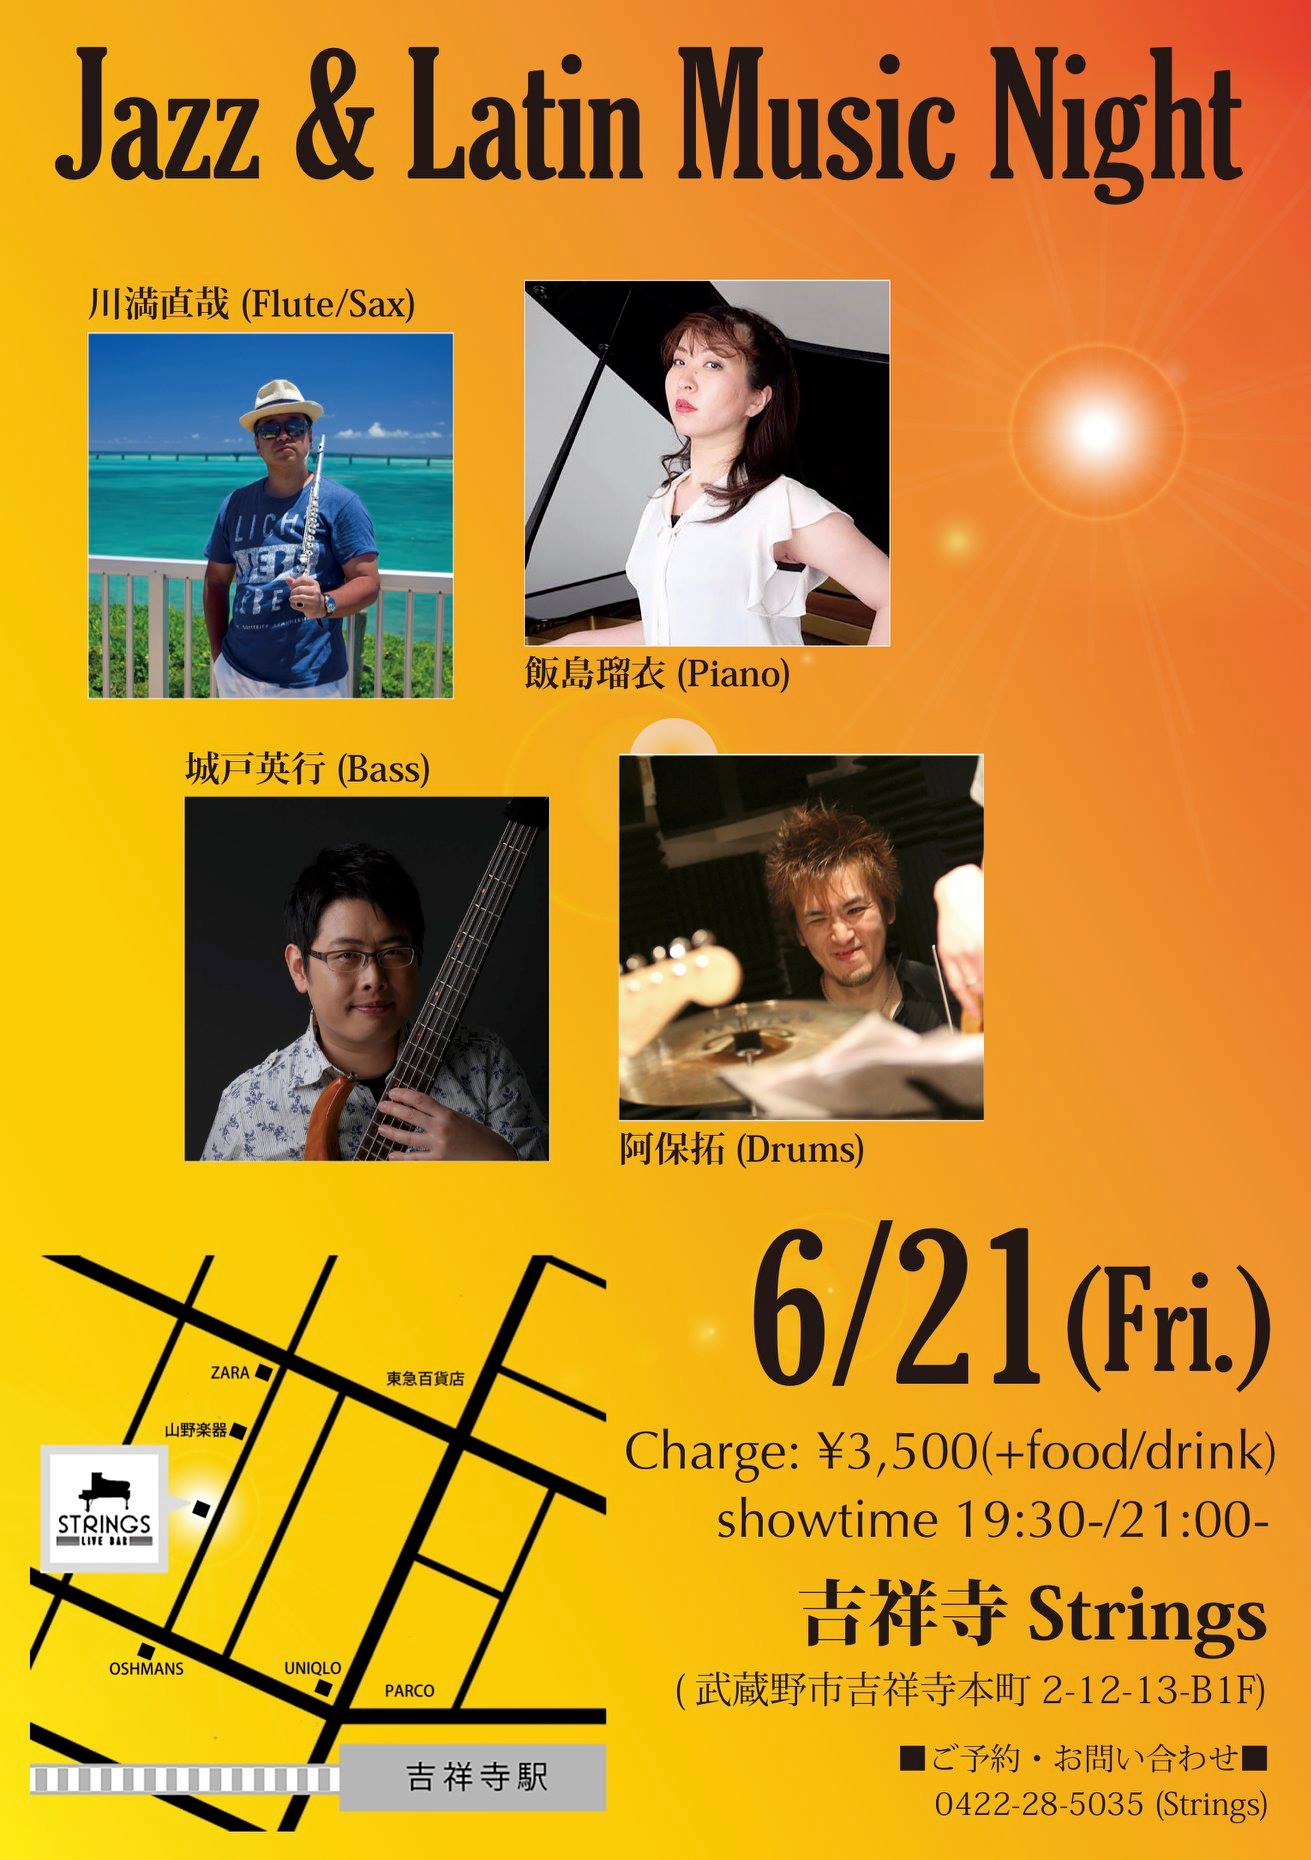 「Jazz & Latin Music Night」 @ 吉祥寺Strings